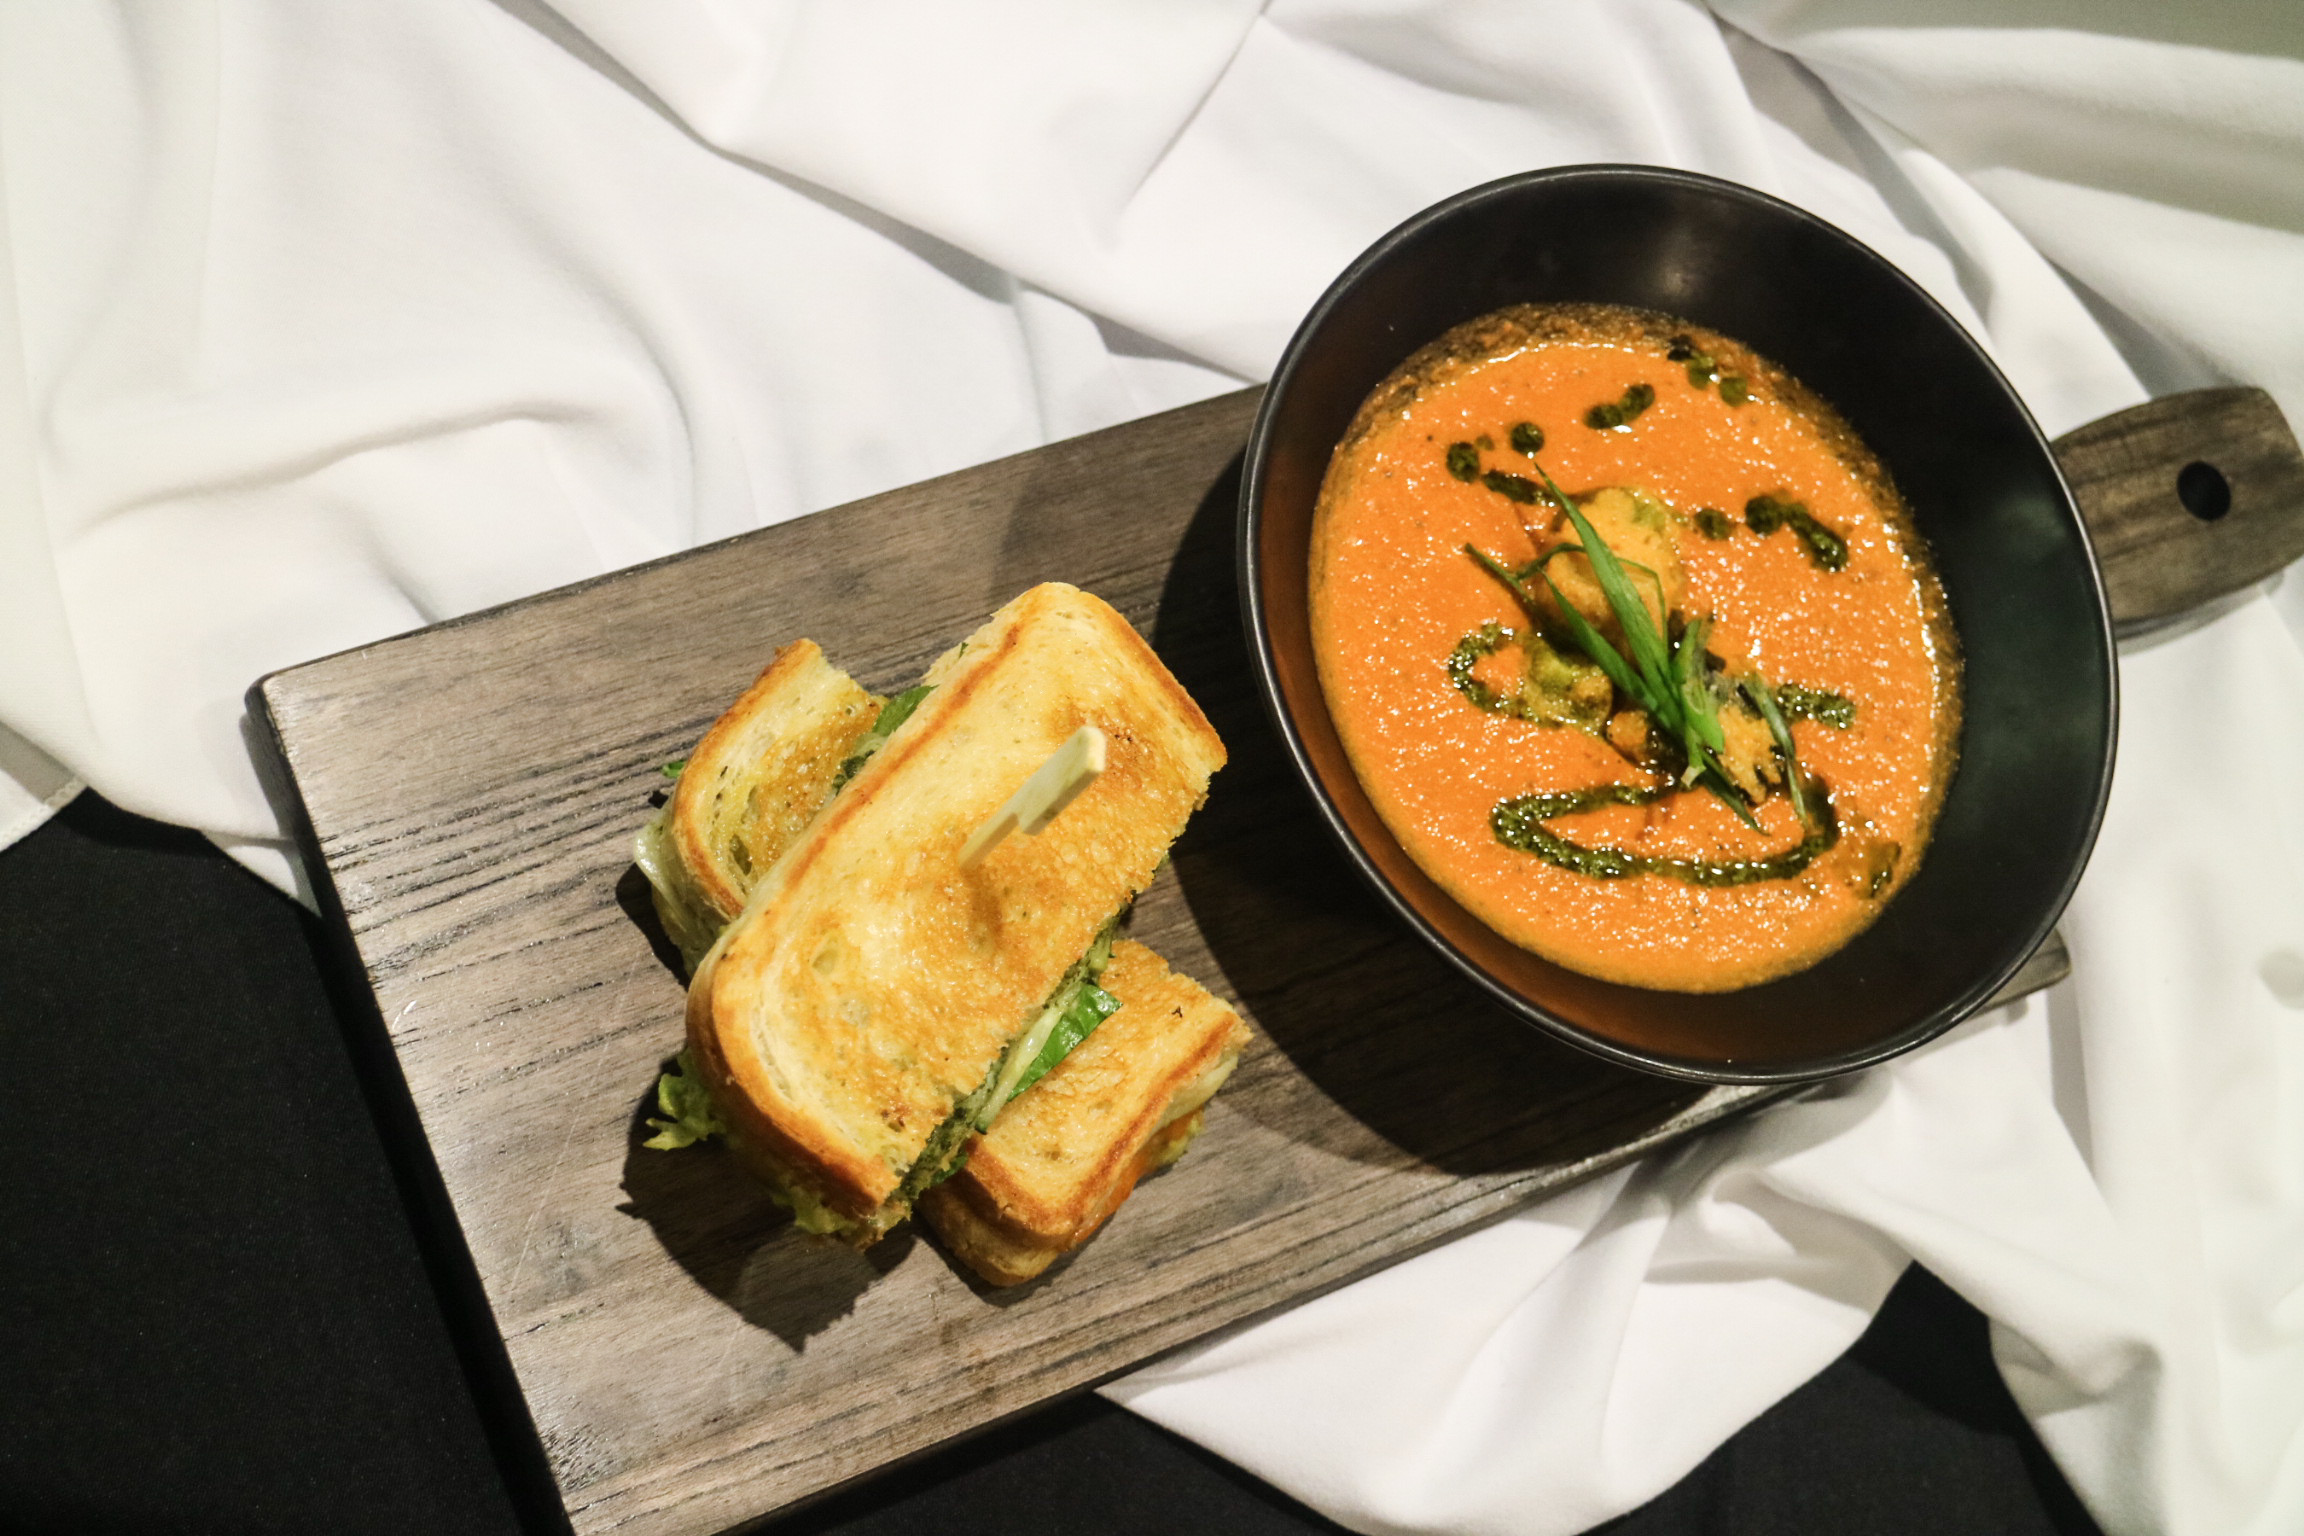 Daily Soup (Tomato Soup) with Garlic Toast